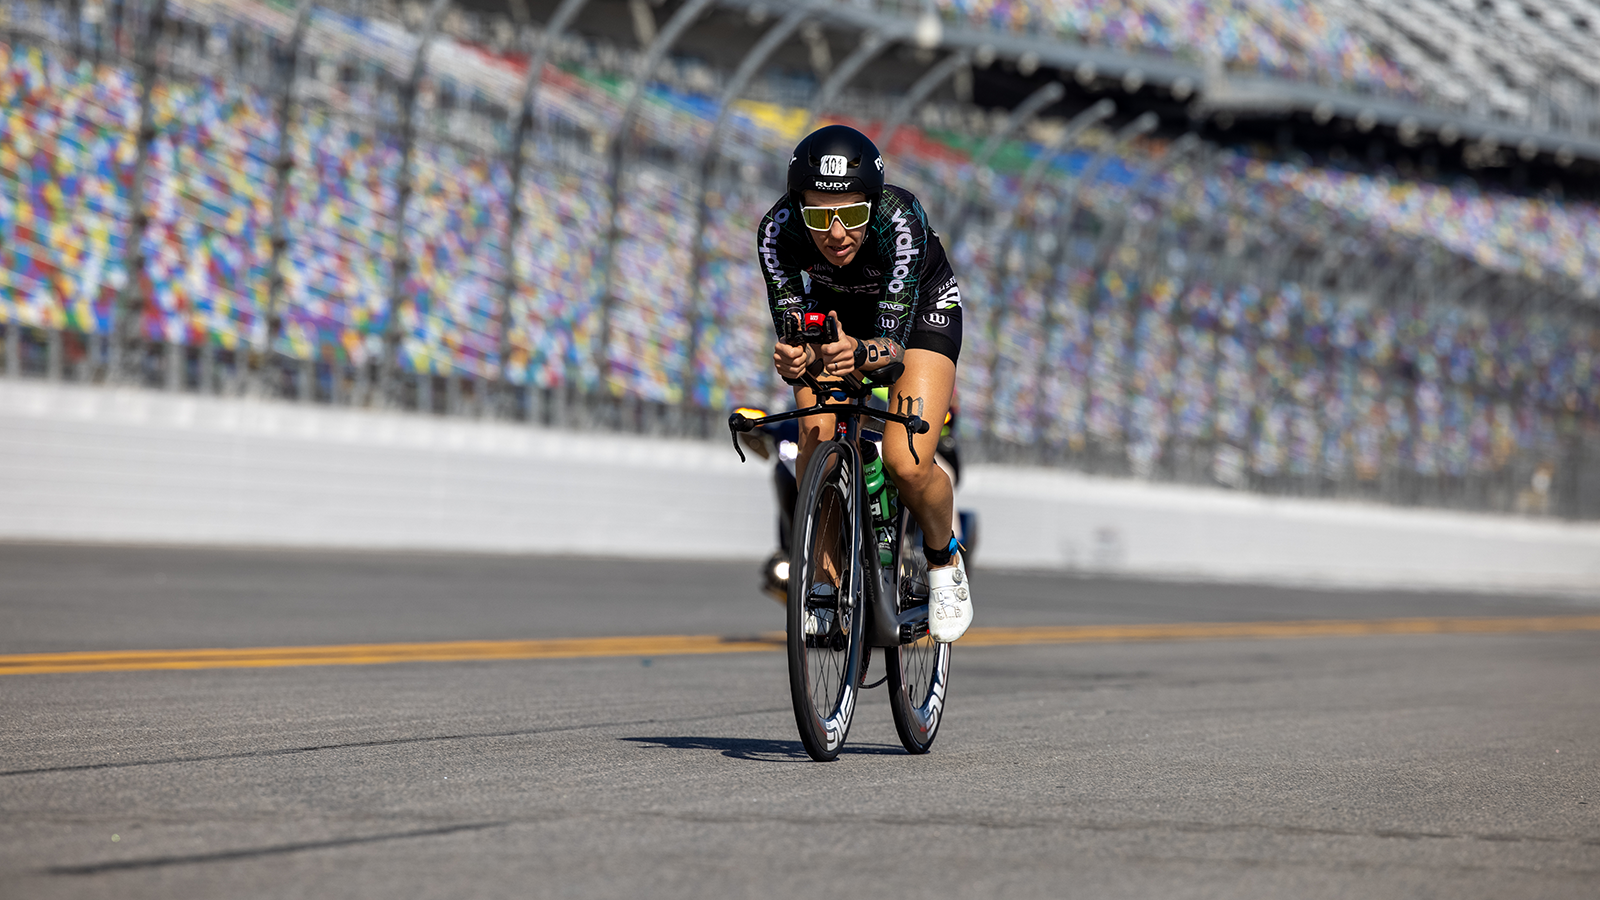 CHALLENGEMIAMI: Race Preview